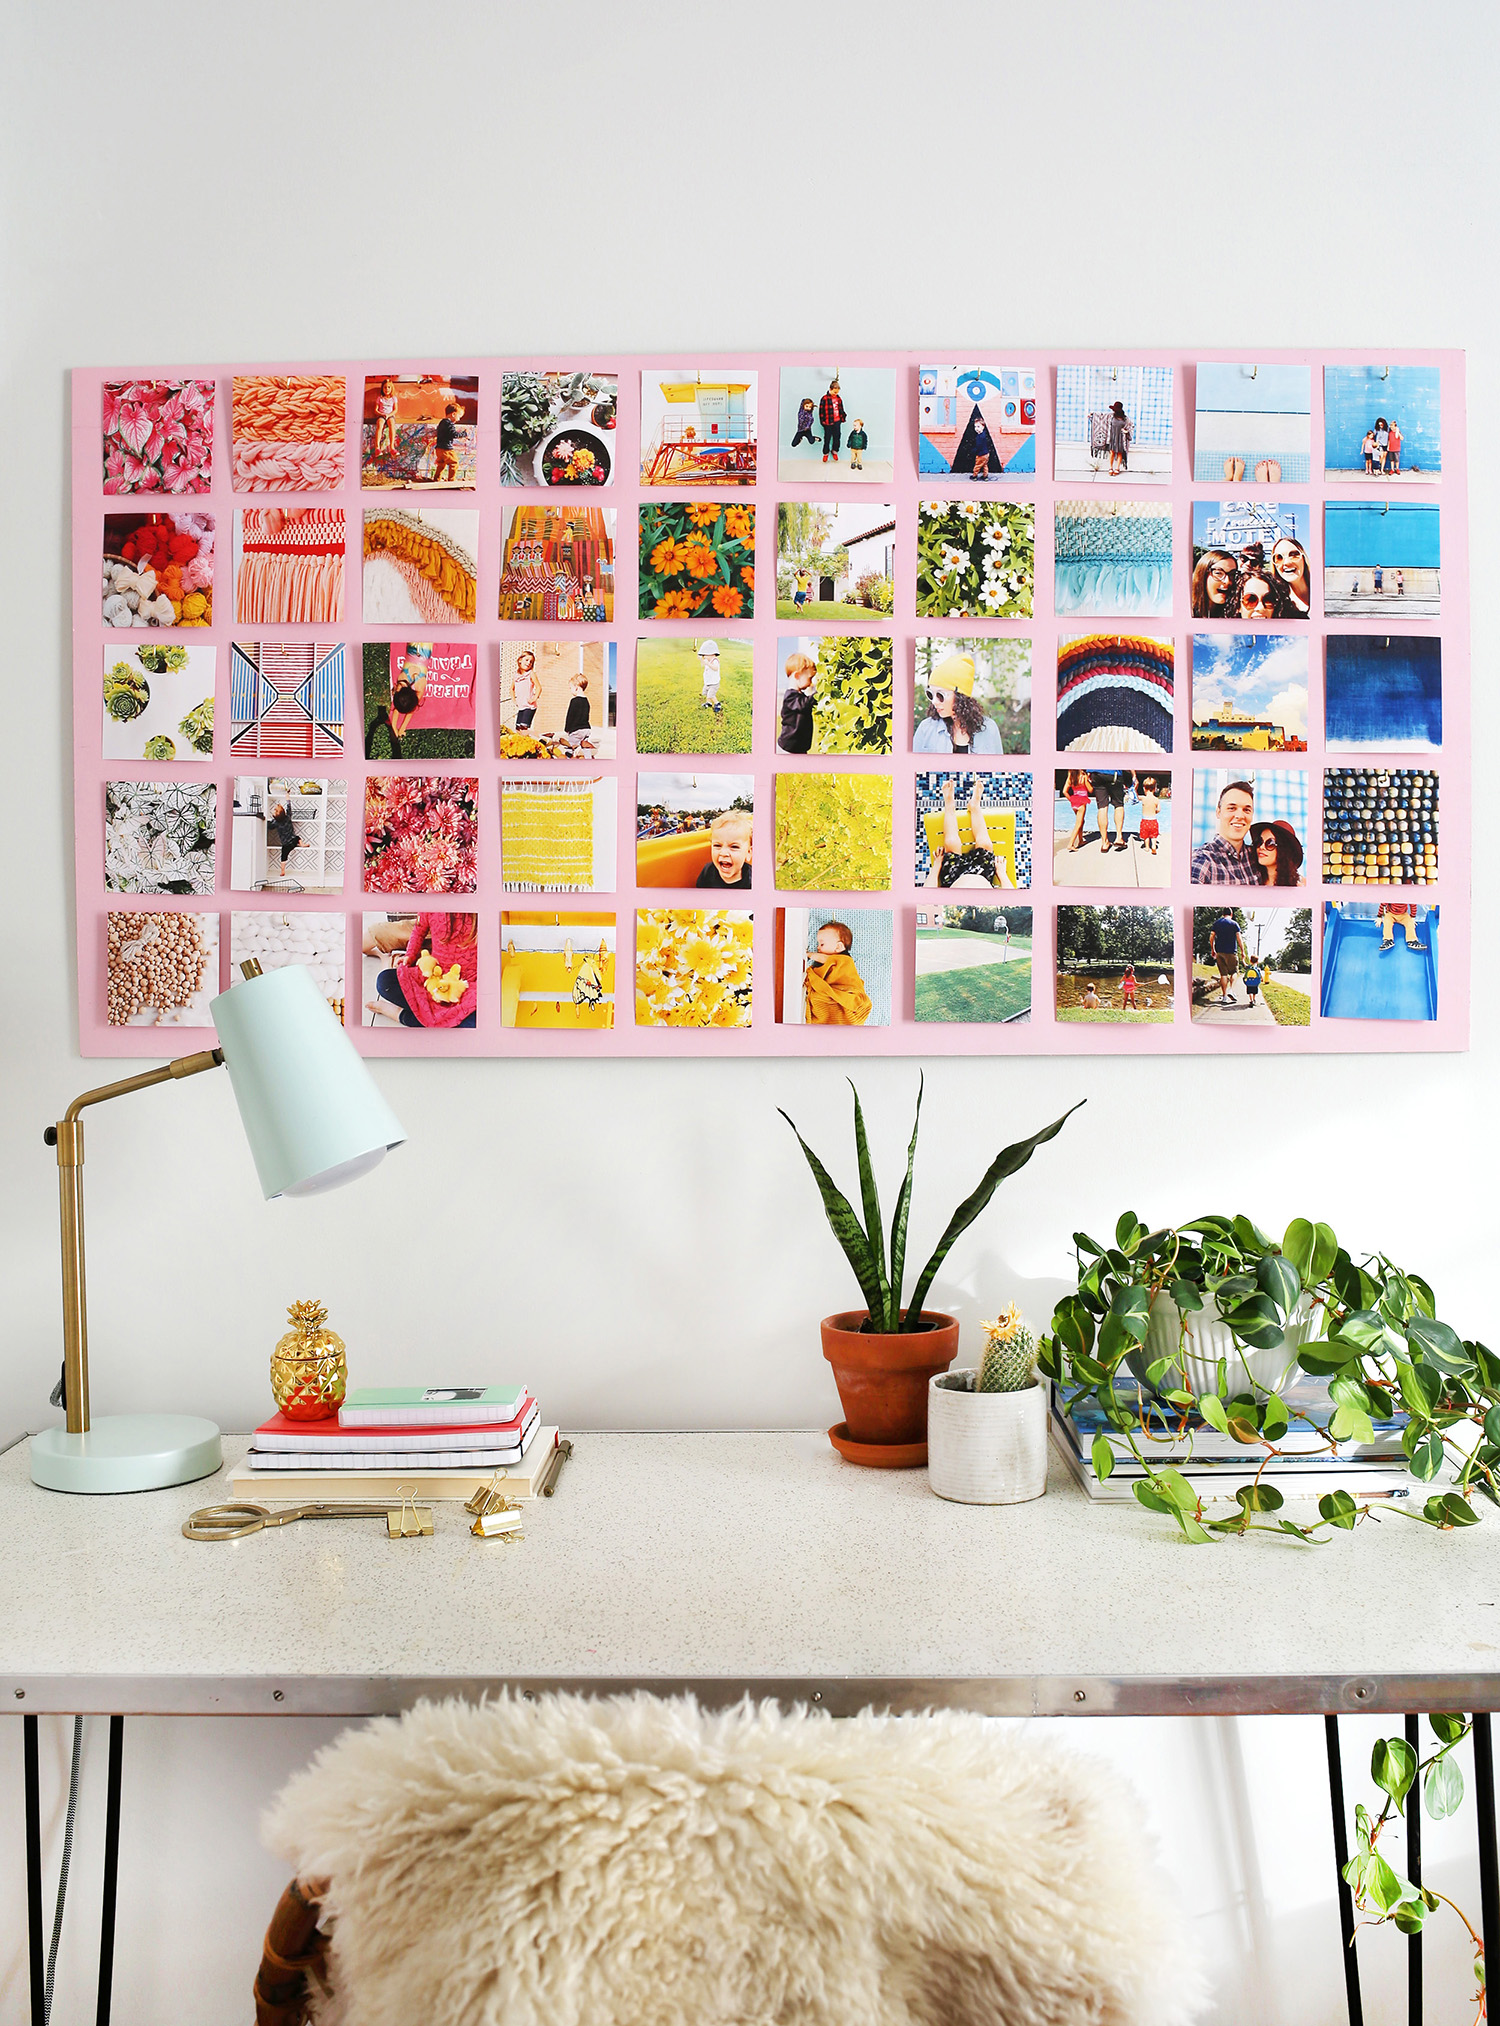 5 Simple Gallery Wall Ideas: How To Make Product Collages For Your Blog